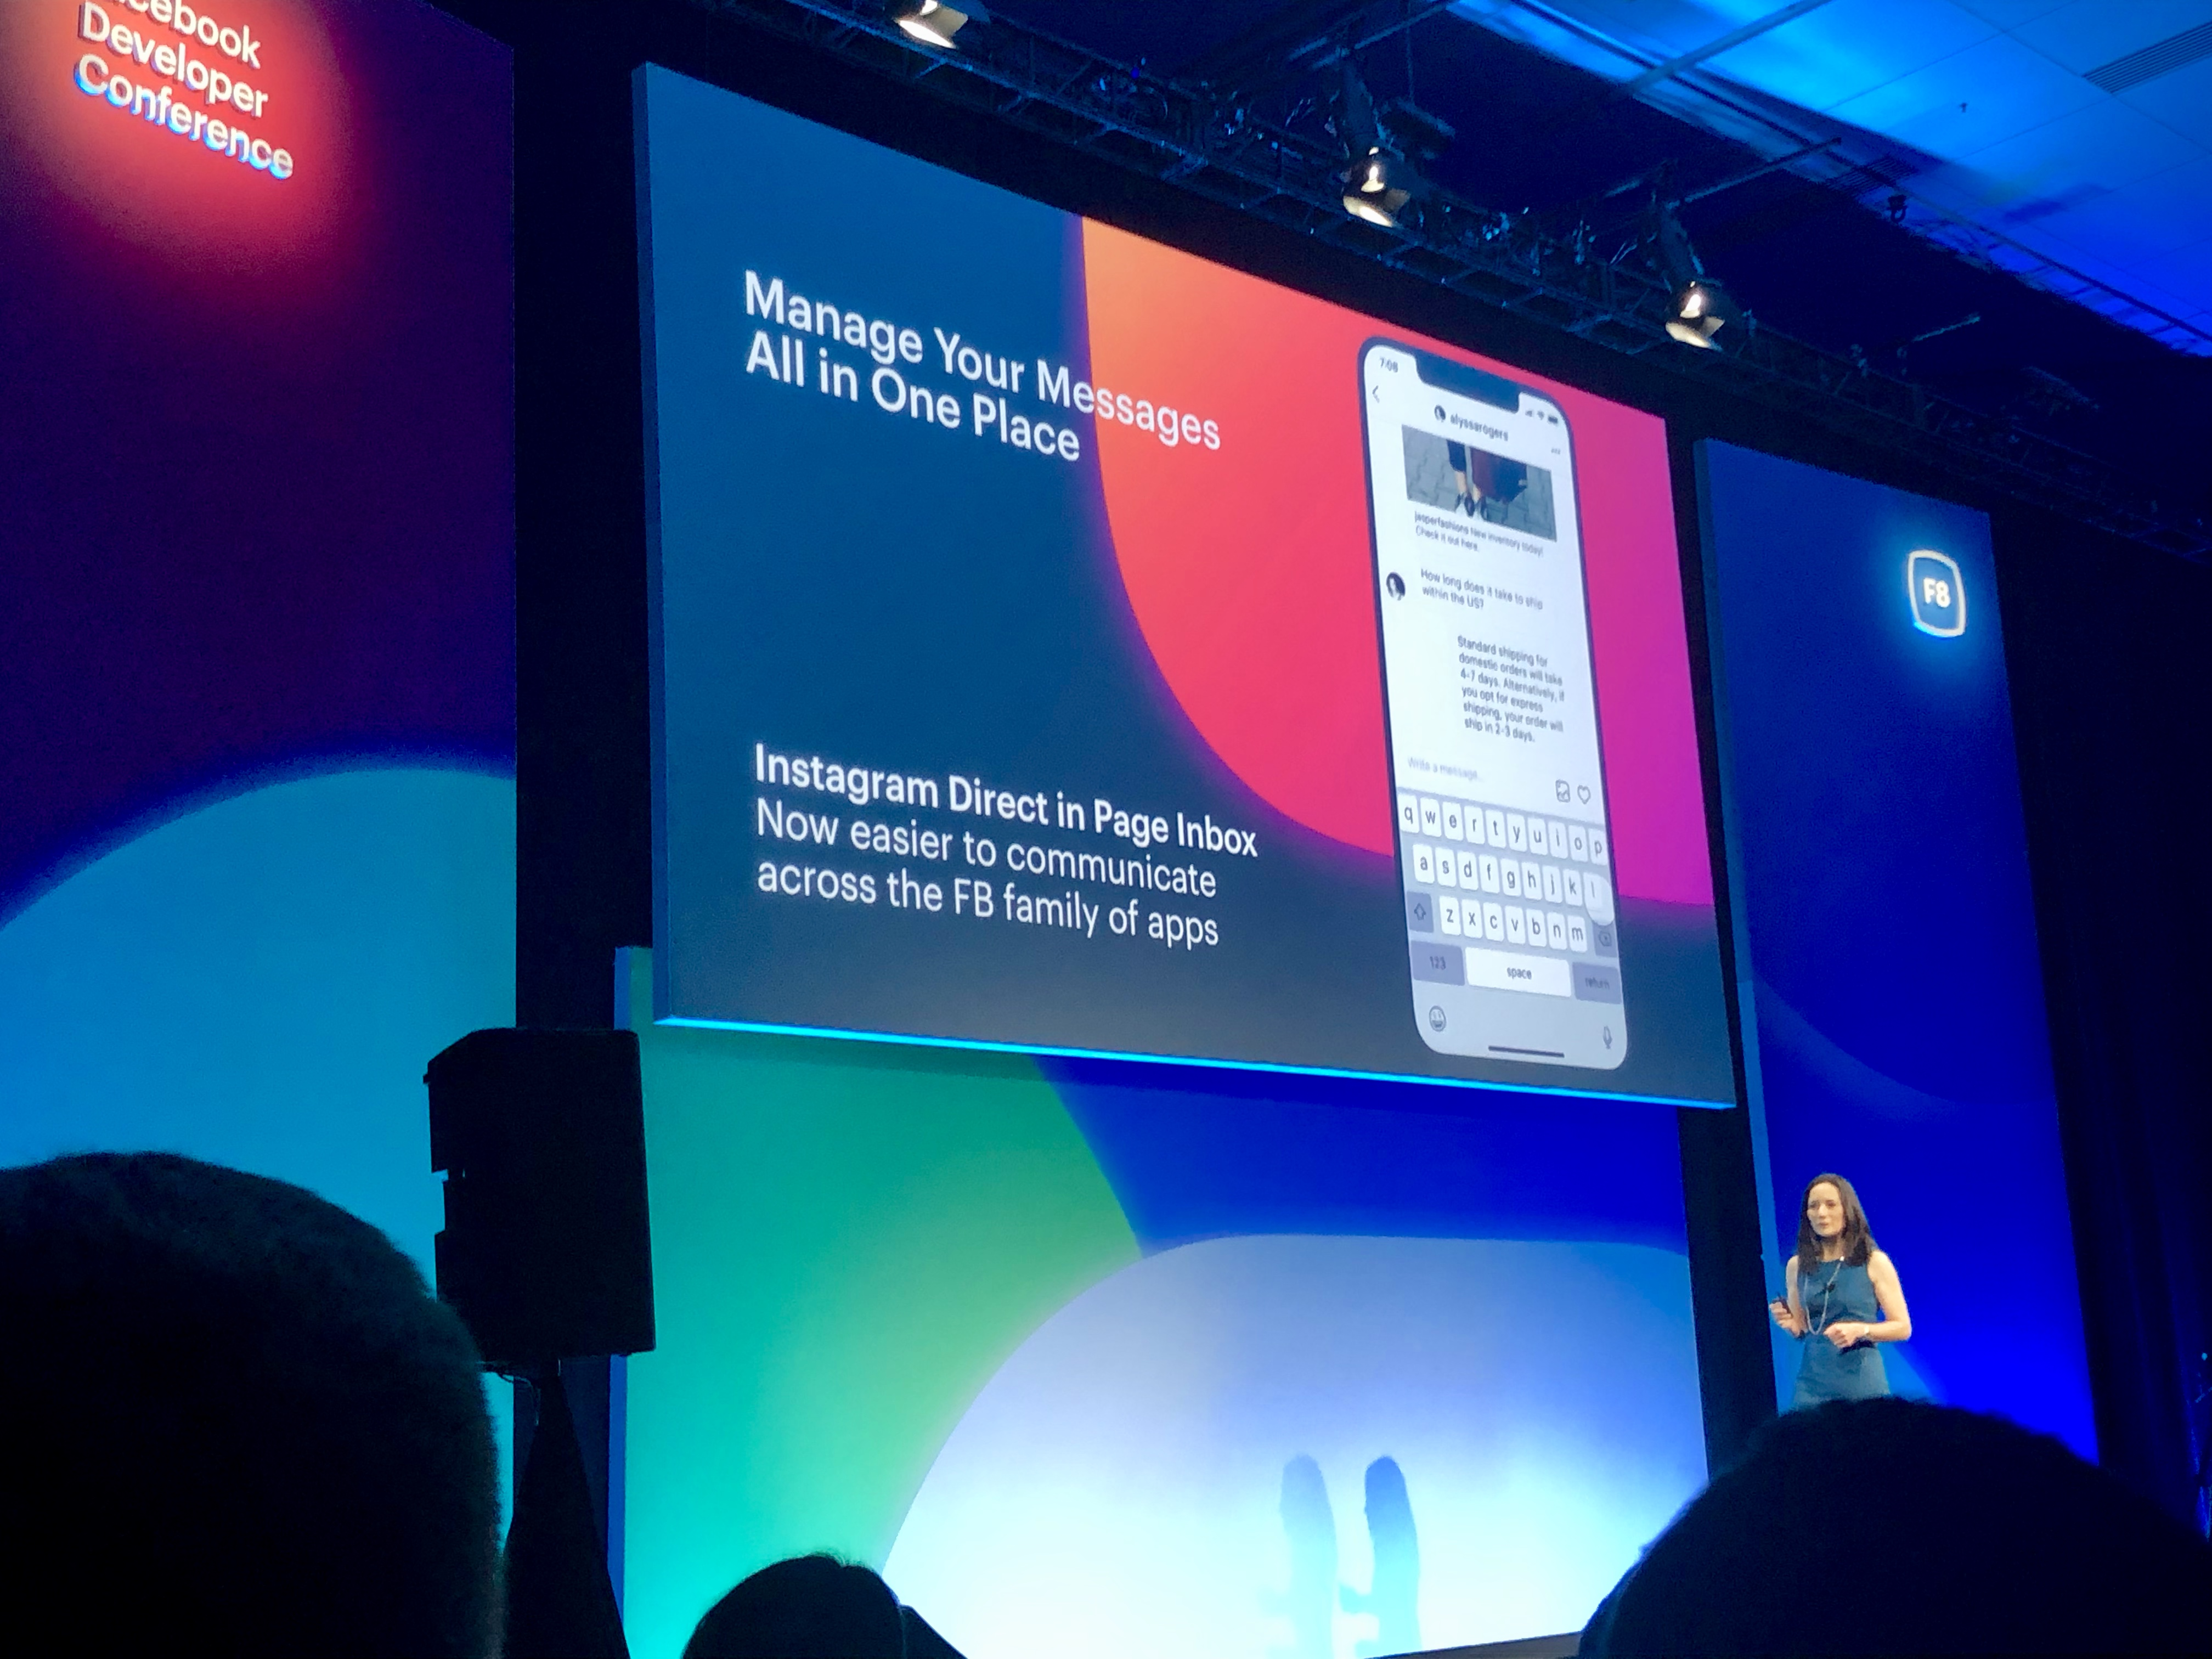 f8 - messages all in one place